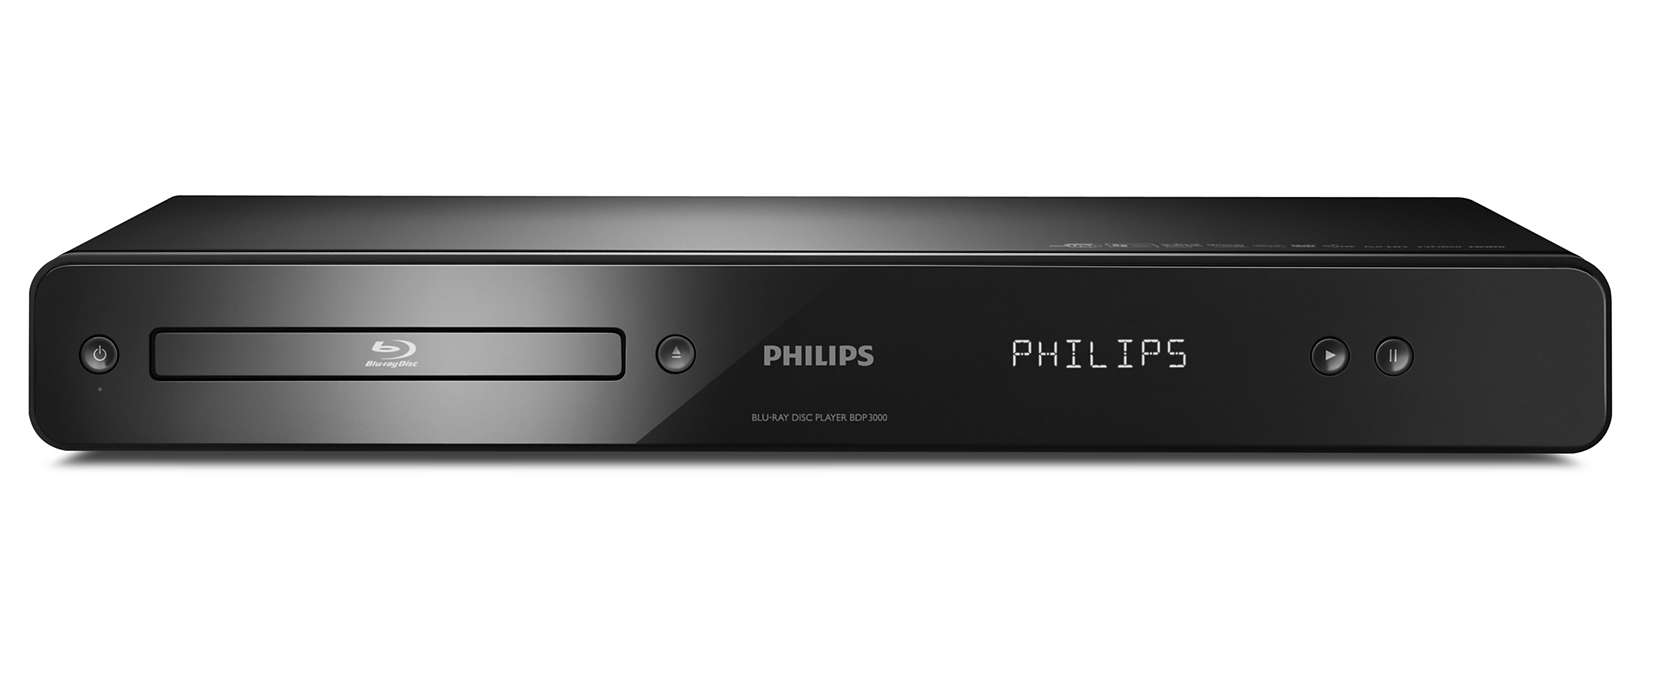 blu ray disc player bdp3000 05 philips